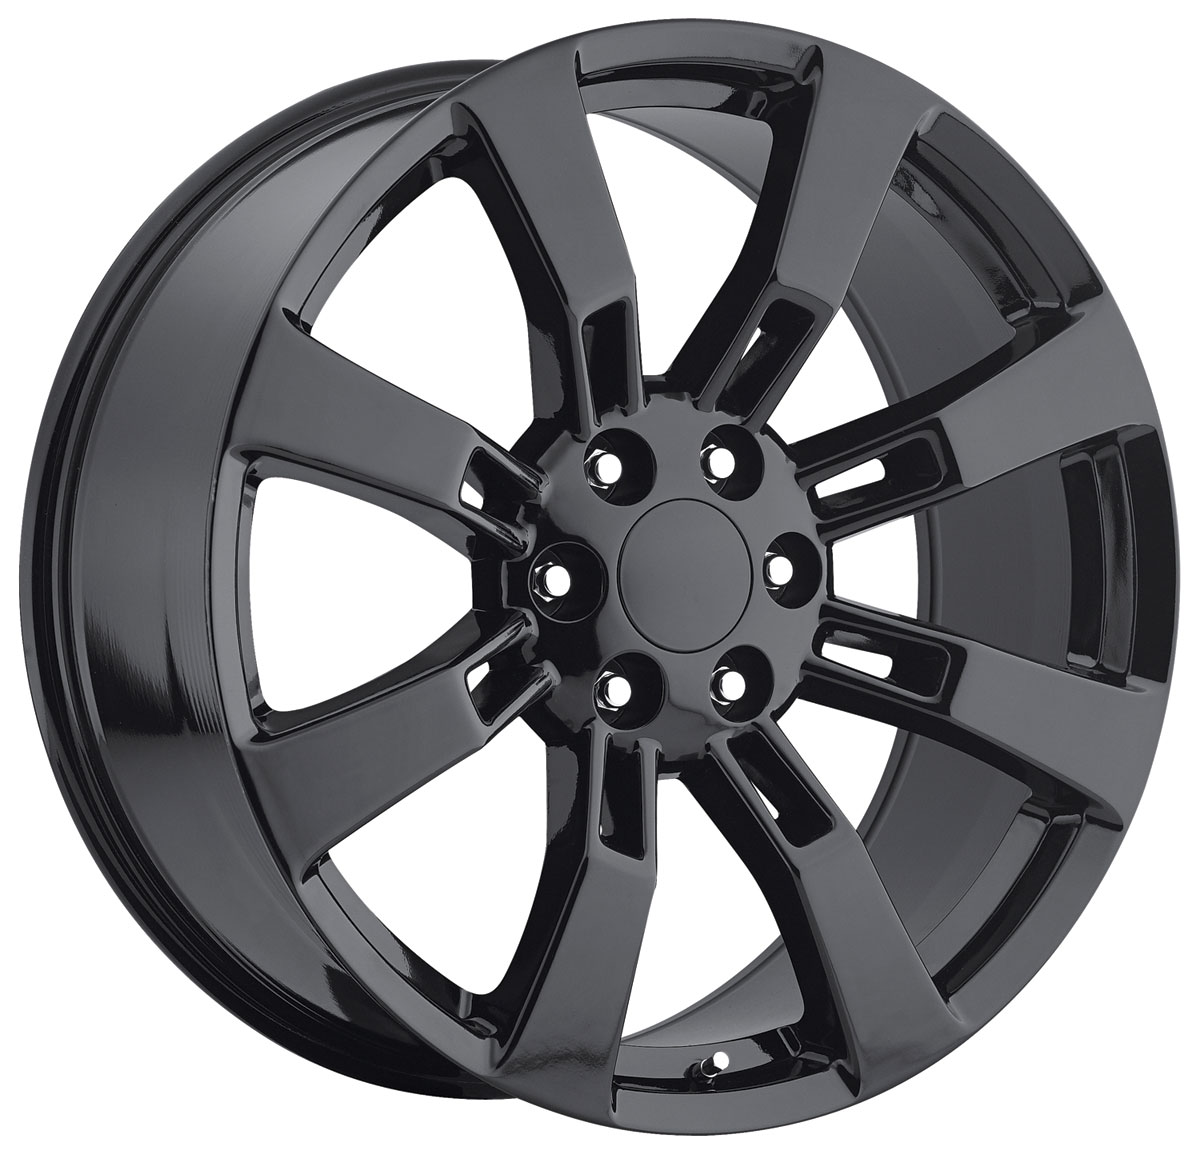 Wheel, Factory Reproduction, Escalade, SRS 40, 20X8.5 6X5.5 +31 HB 78.1